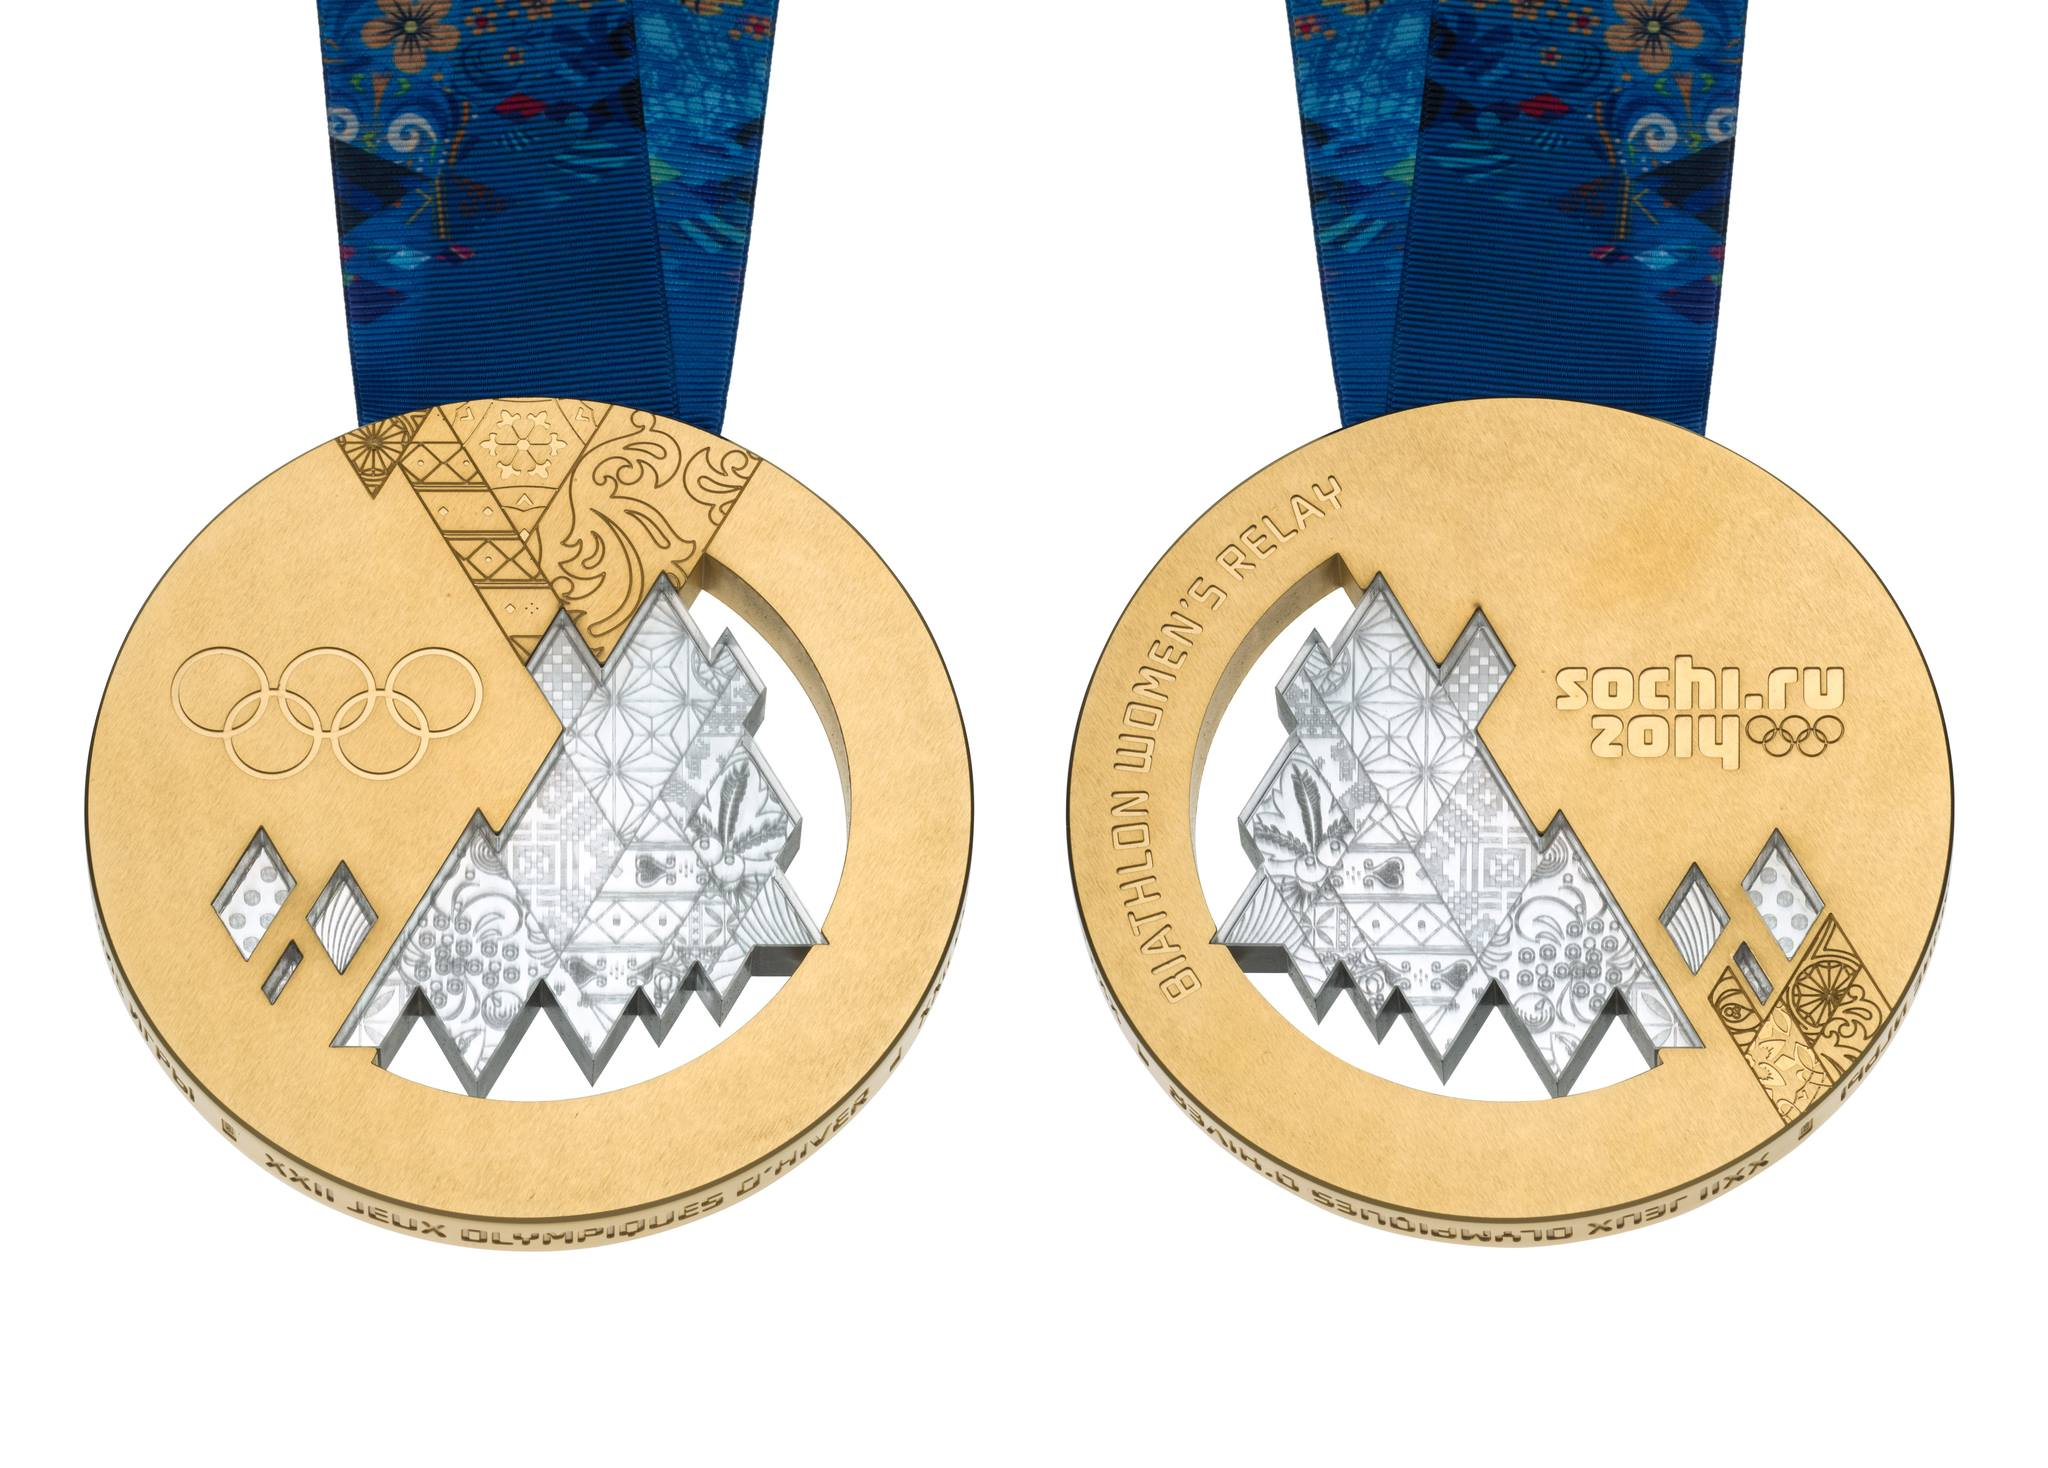 Winter Olympics Sochi Gold Medals Unveiled Photo